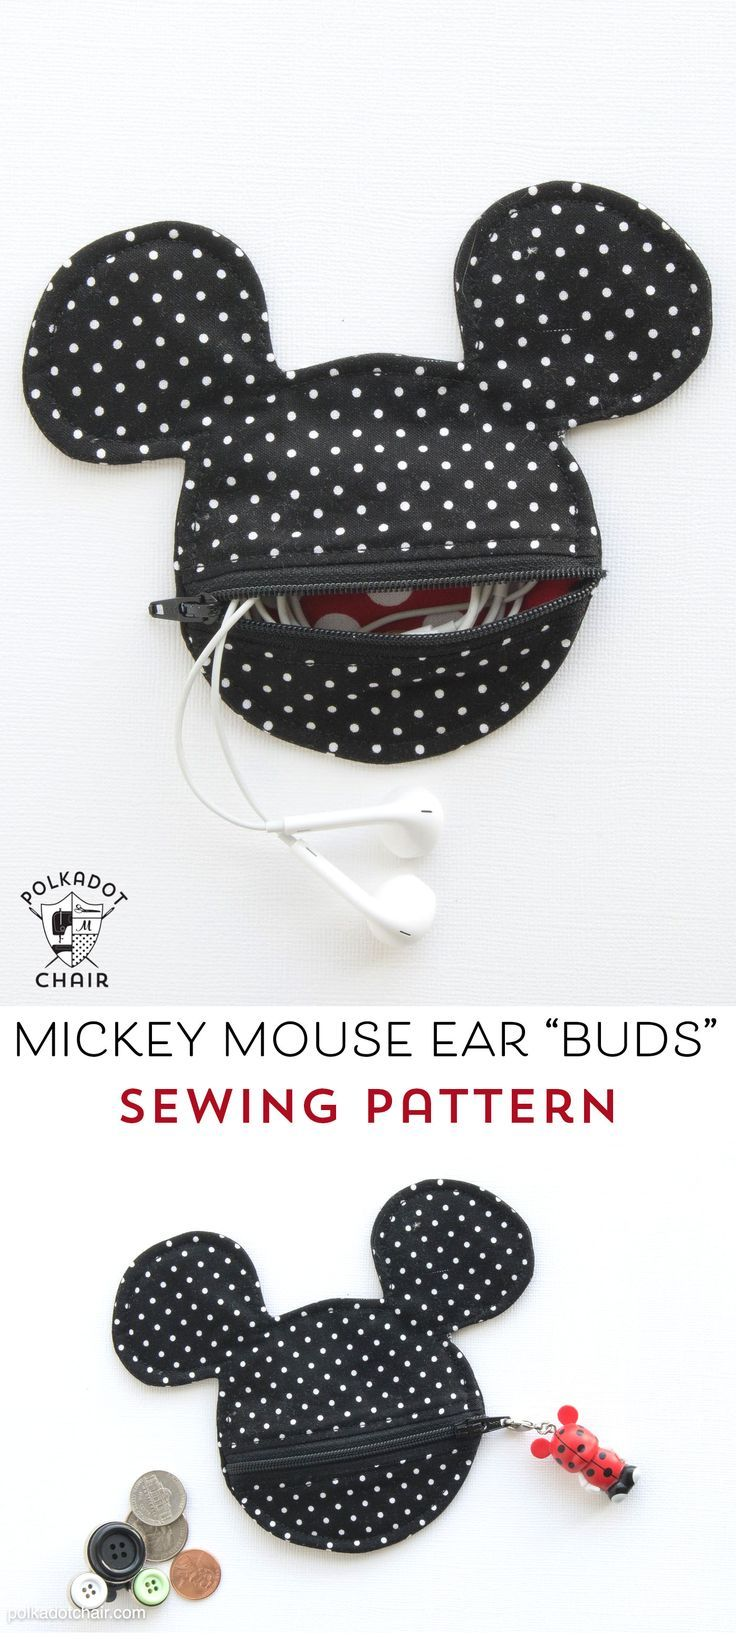 Mickey Mouse Inspired Earbud Pouch Sewing Pattern - Page 2 of 2 ...